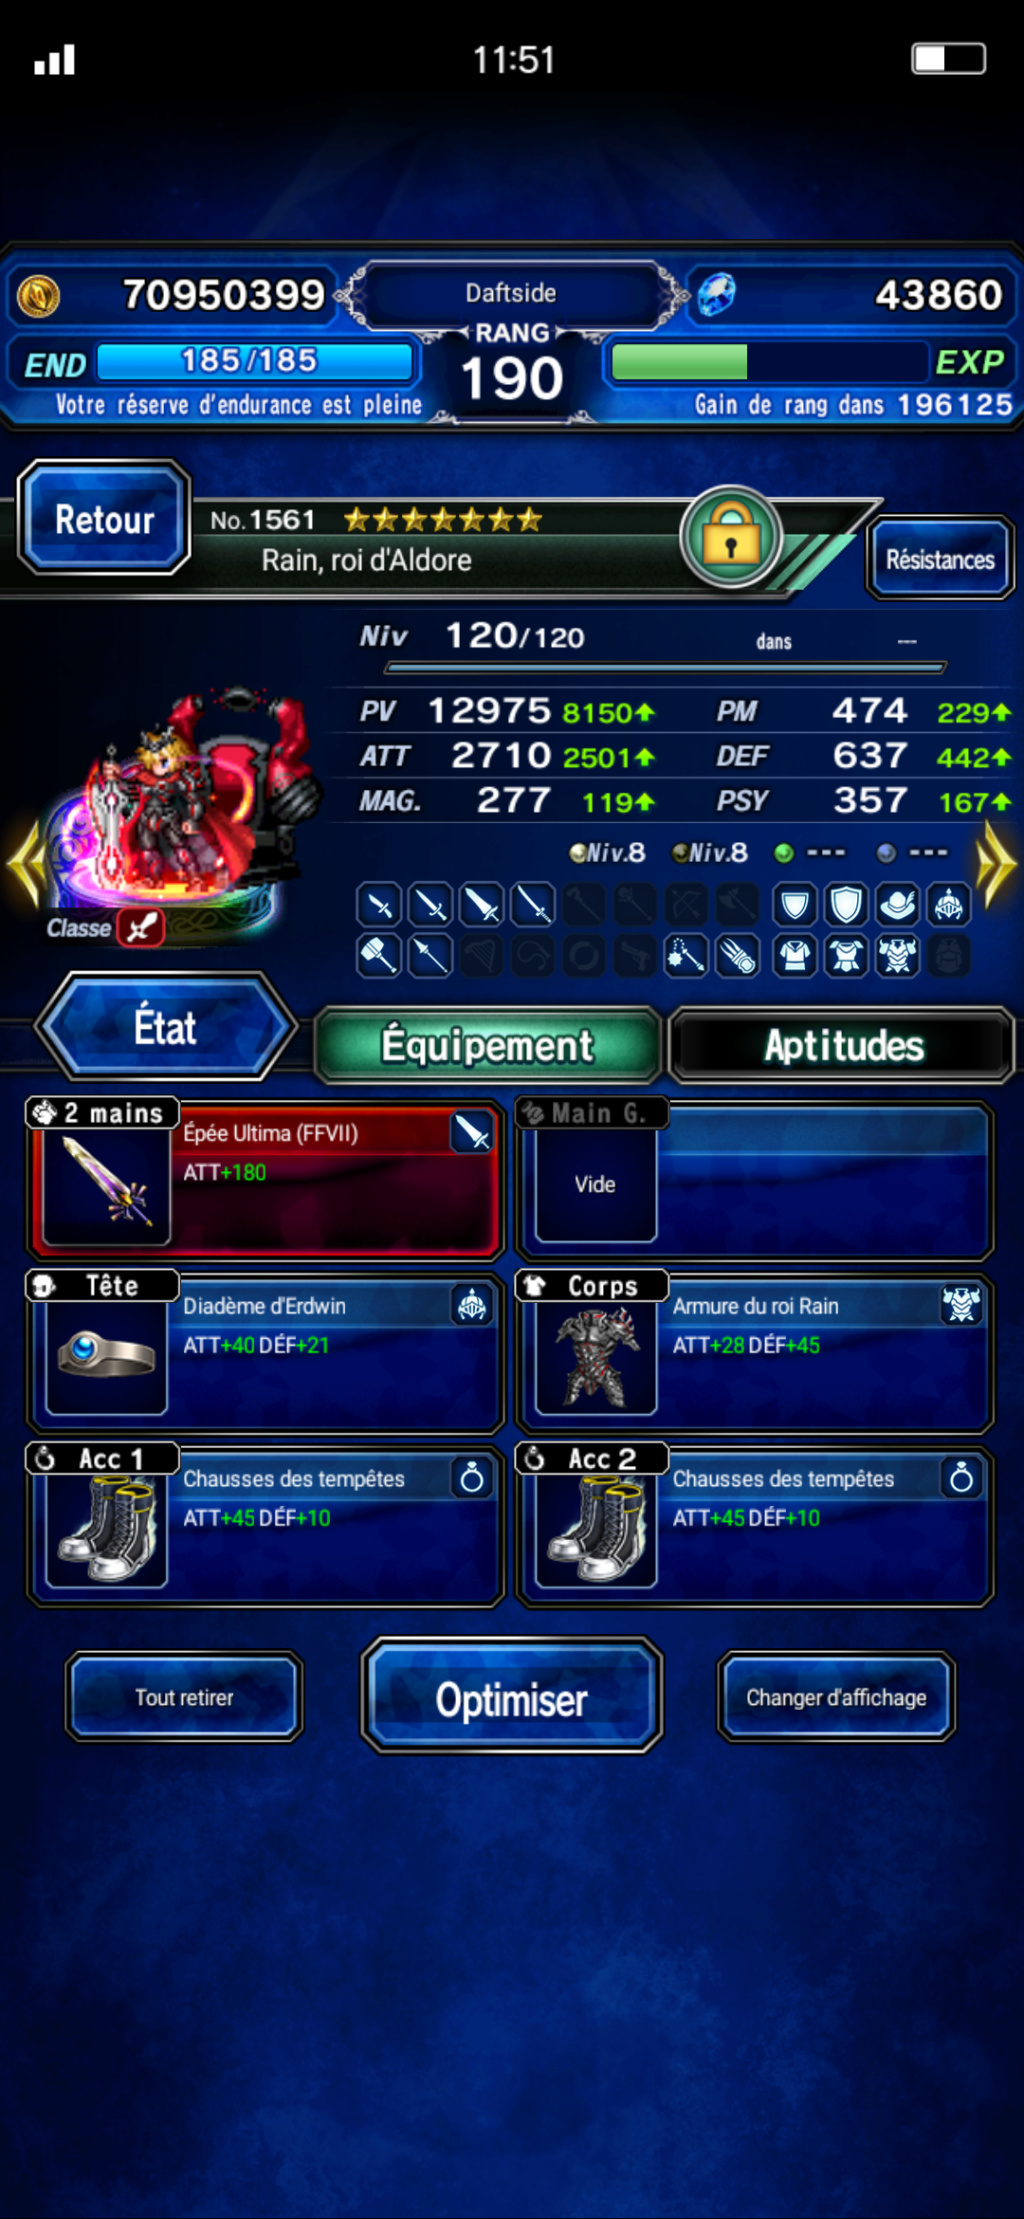 Invocations du moment - FFBE (AKRain) - du 07/11 au 21/11/19 - Page 3 Screen10